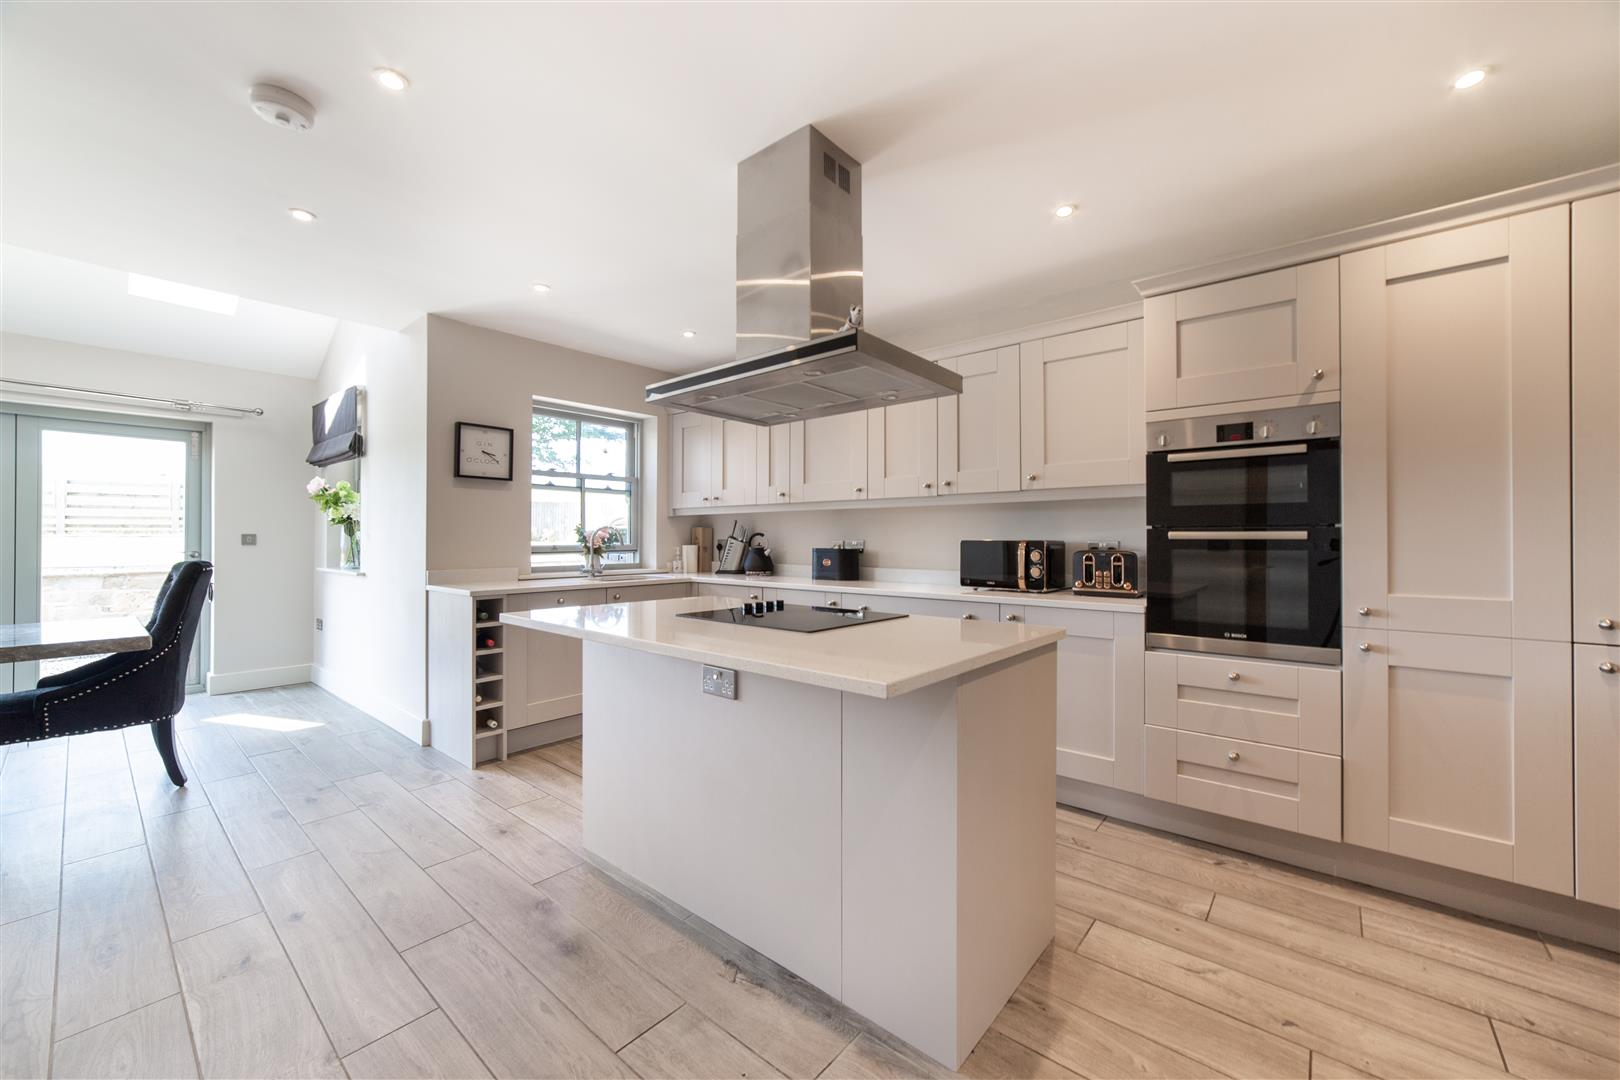 4 bed detached house for sale, Hexham 1